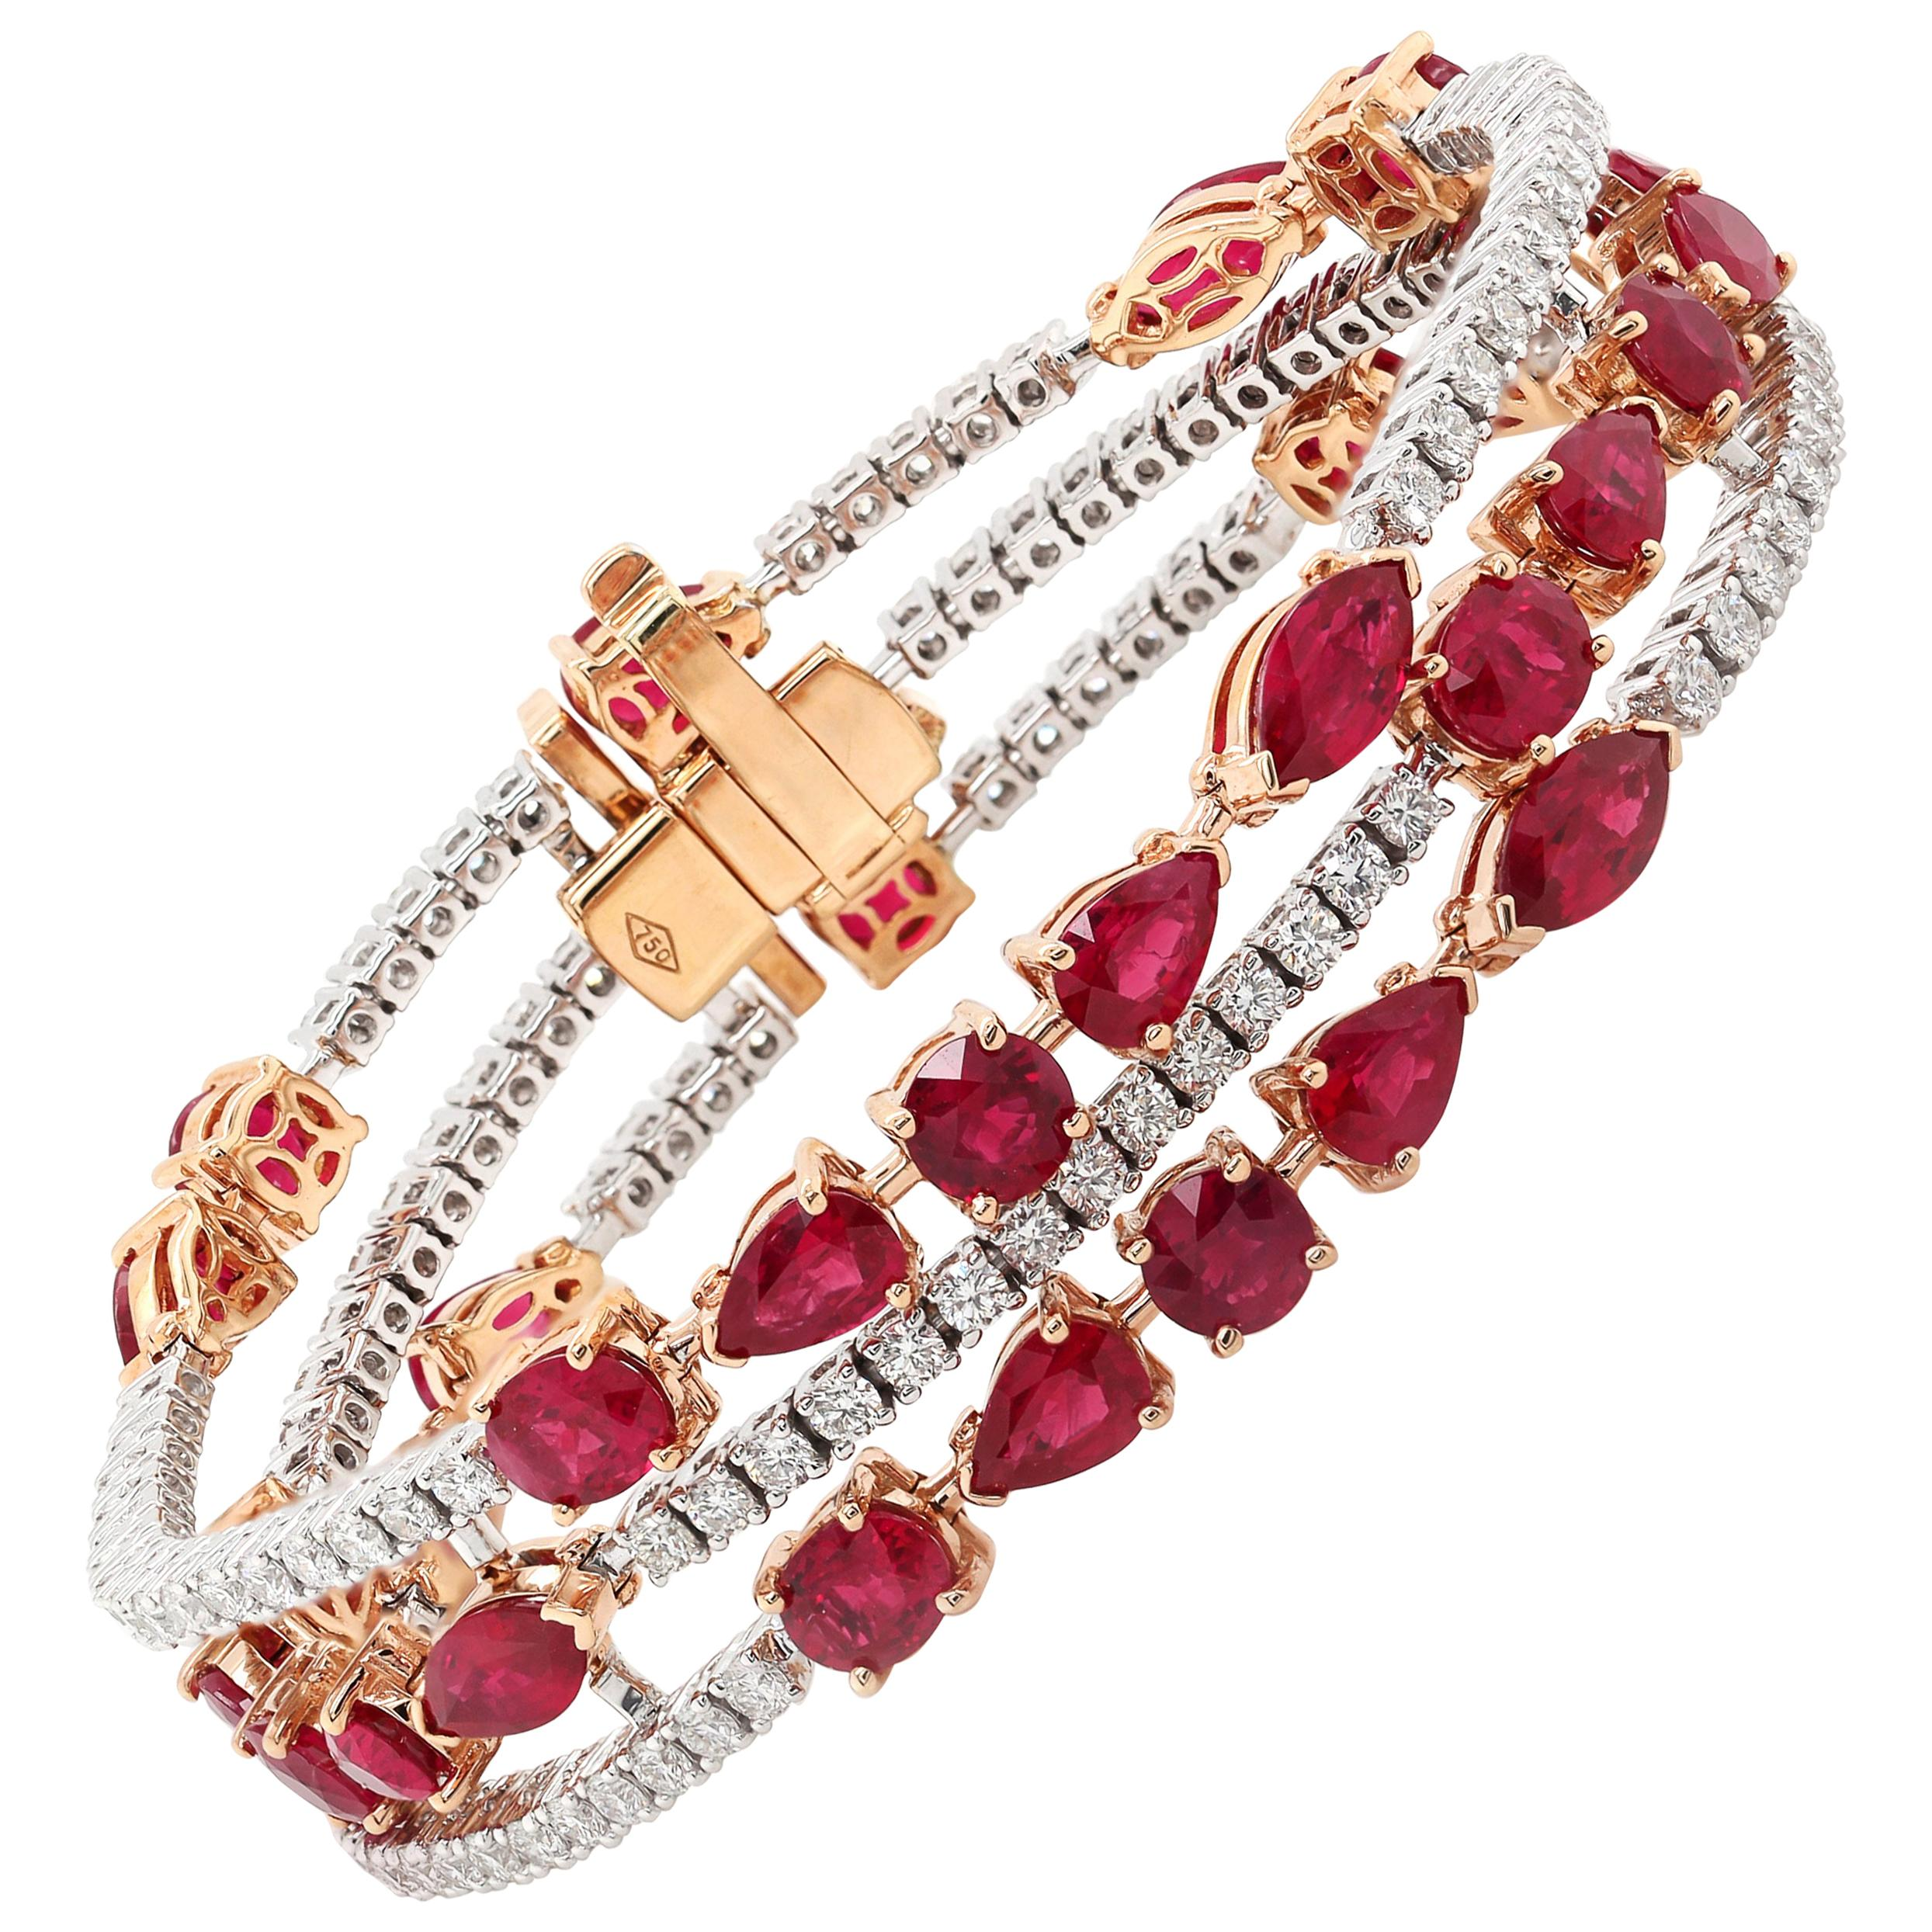 17.32 Carat Ruby Mixed Cut 18 Karat White Gold Chain Bracelet